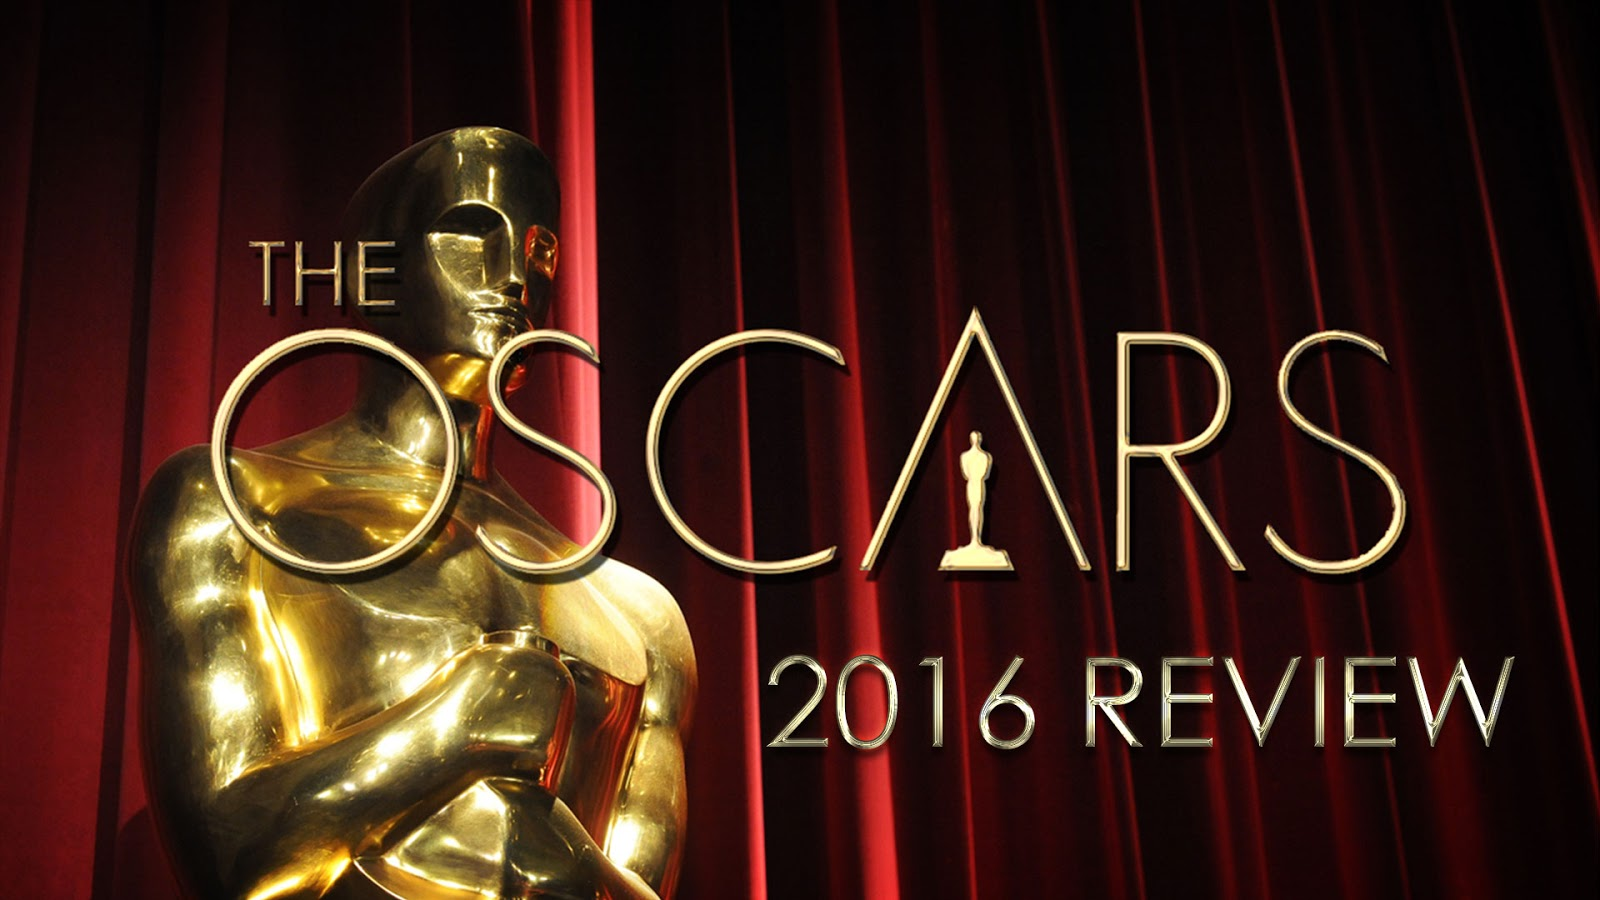 88th Academy Awards Review 2016 Oscars show